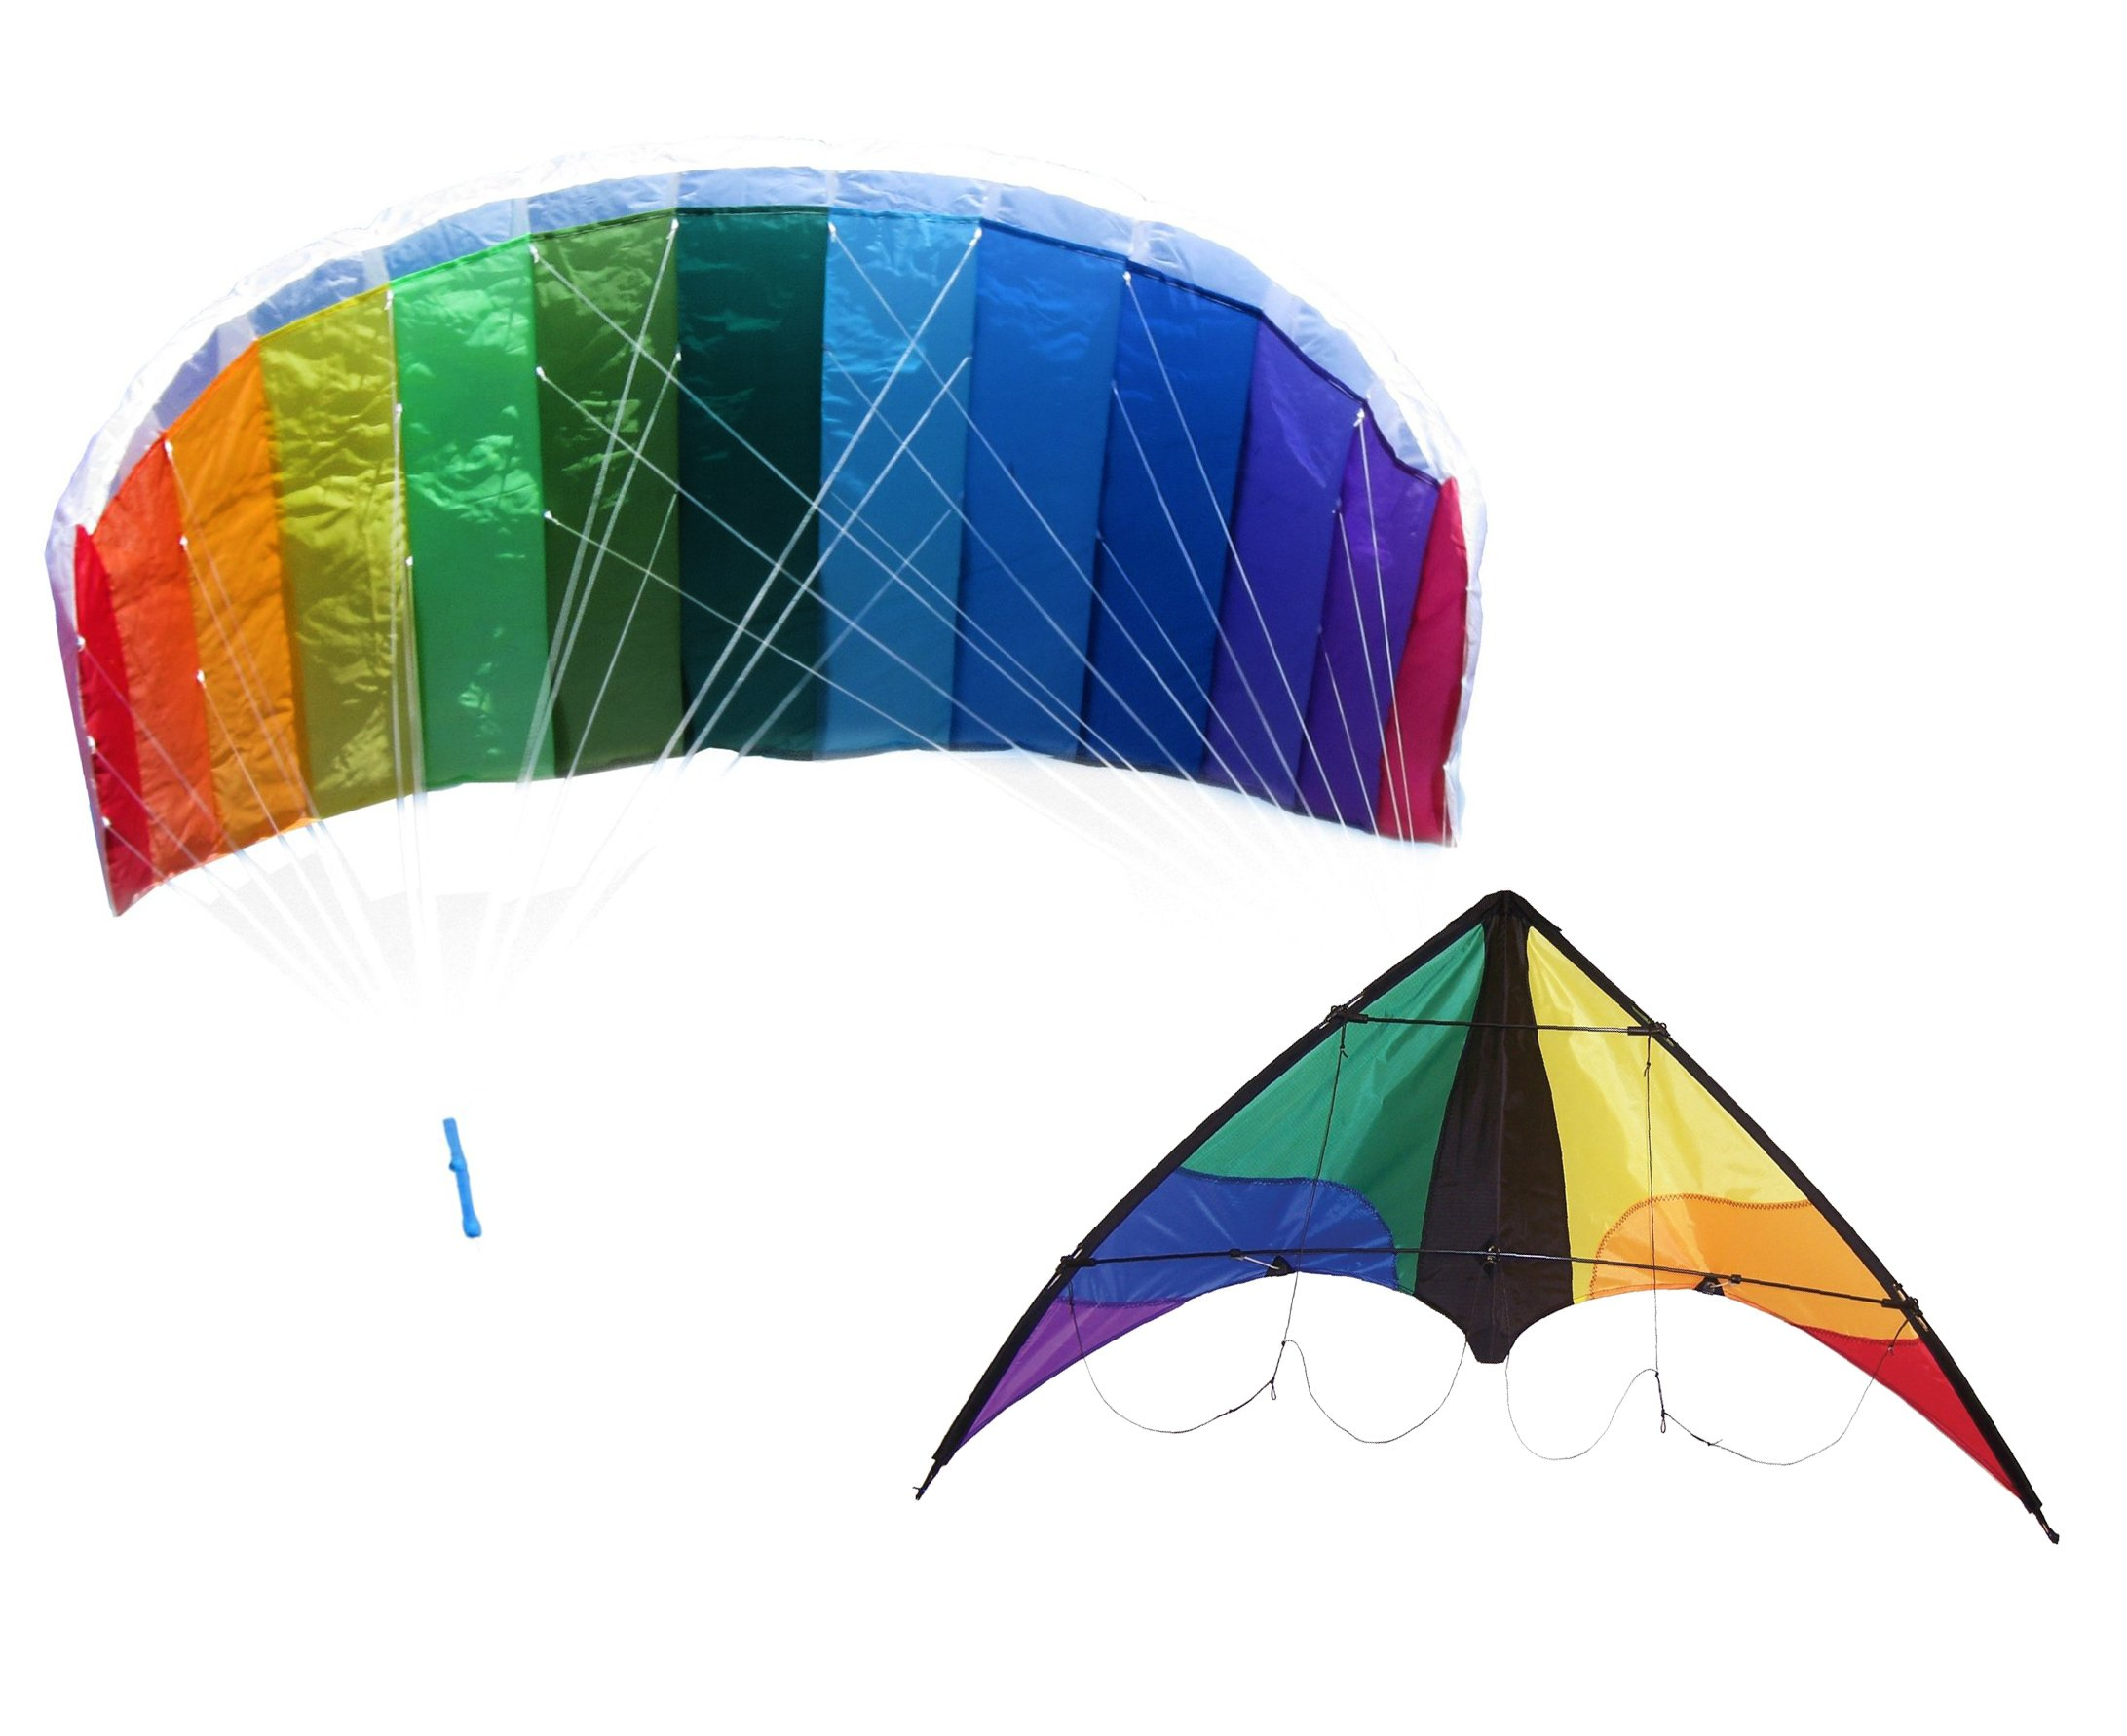 Maven Gifts: In The Breeze 2-Pack Kite Bundle – Colorwave 2-Line Stunt Kite, 48-Inch x 26-Inch with Rainbow Sport Air Foil Kite, 62-Inch x 27-Inch